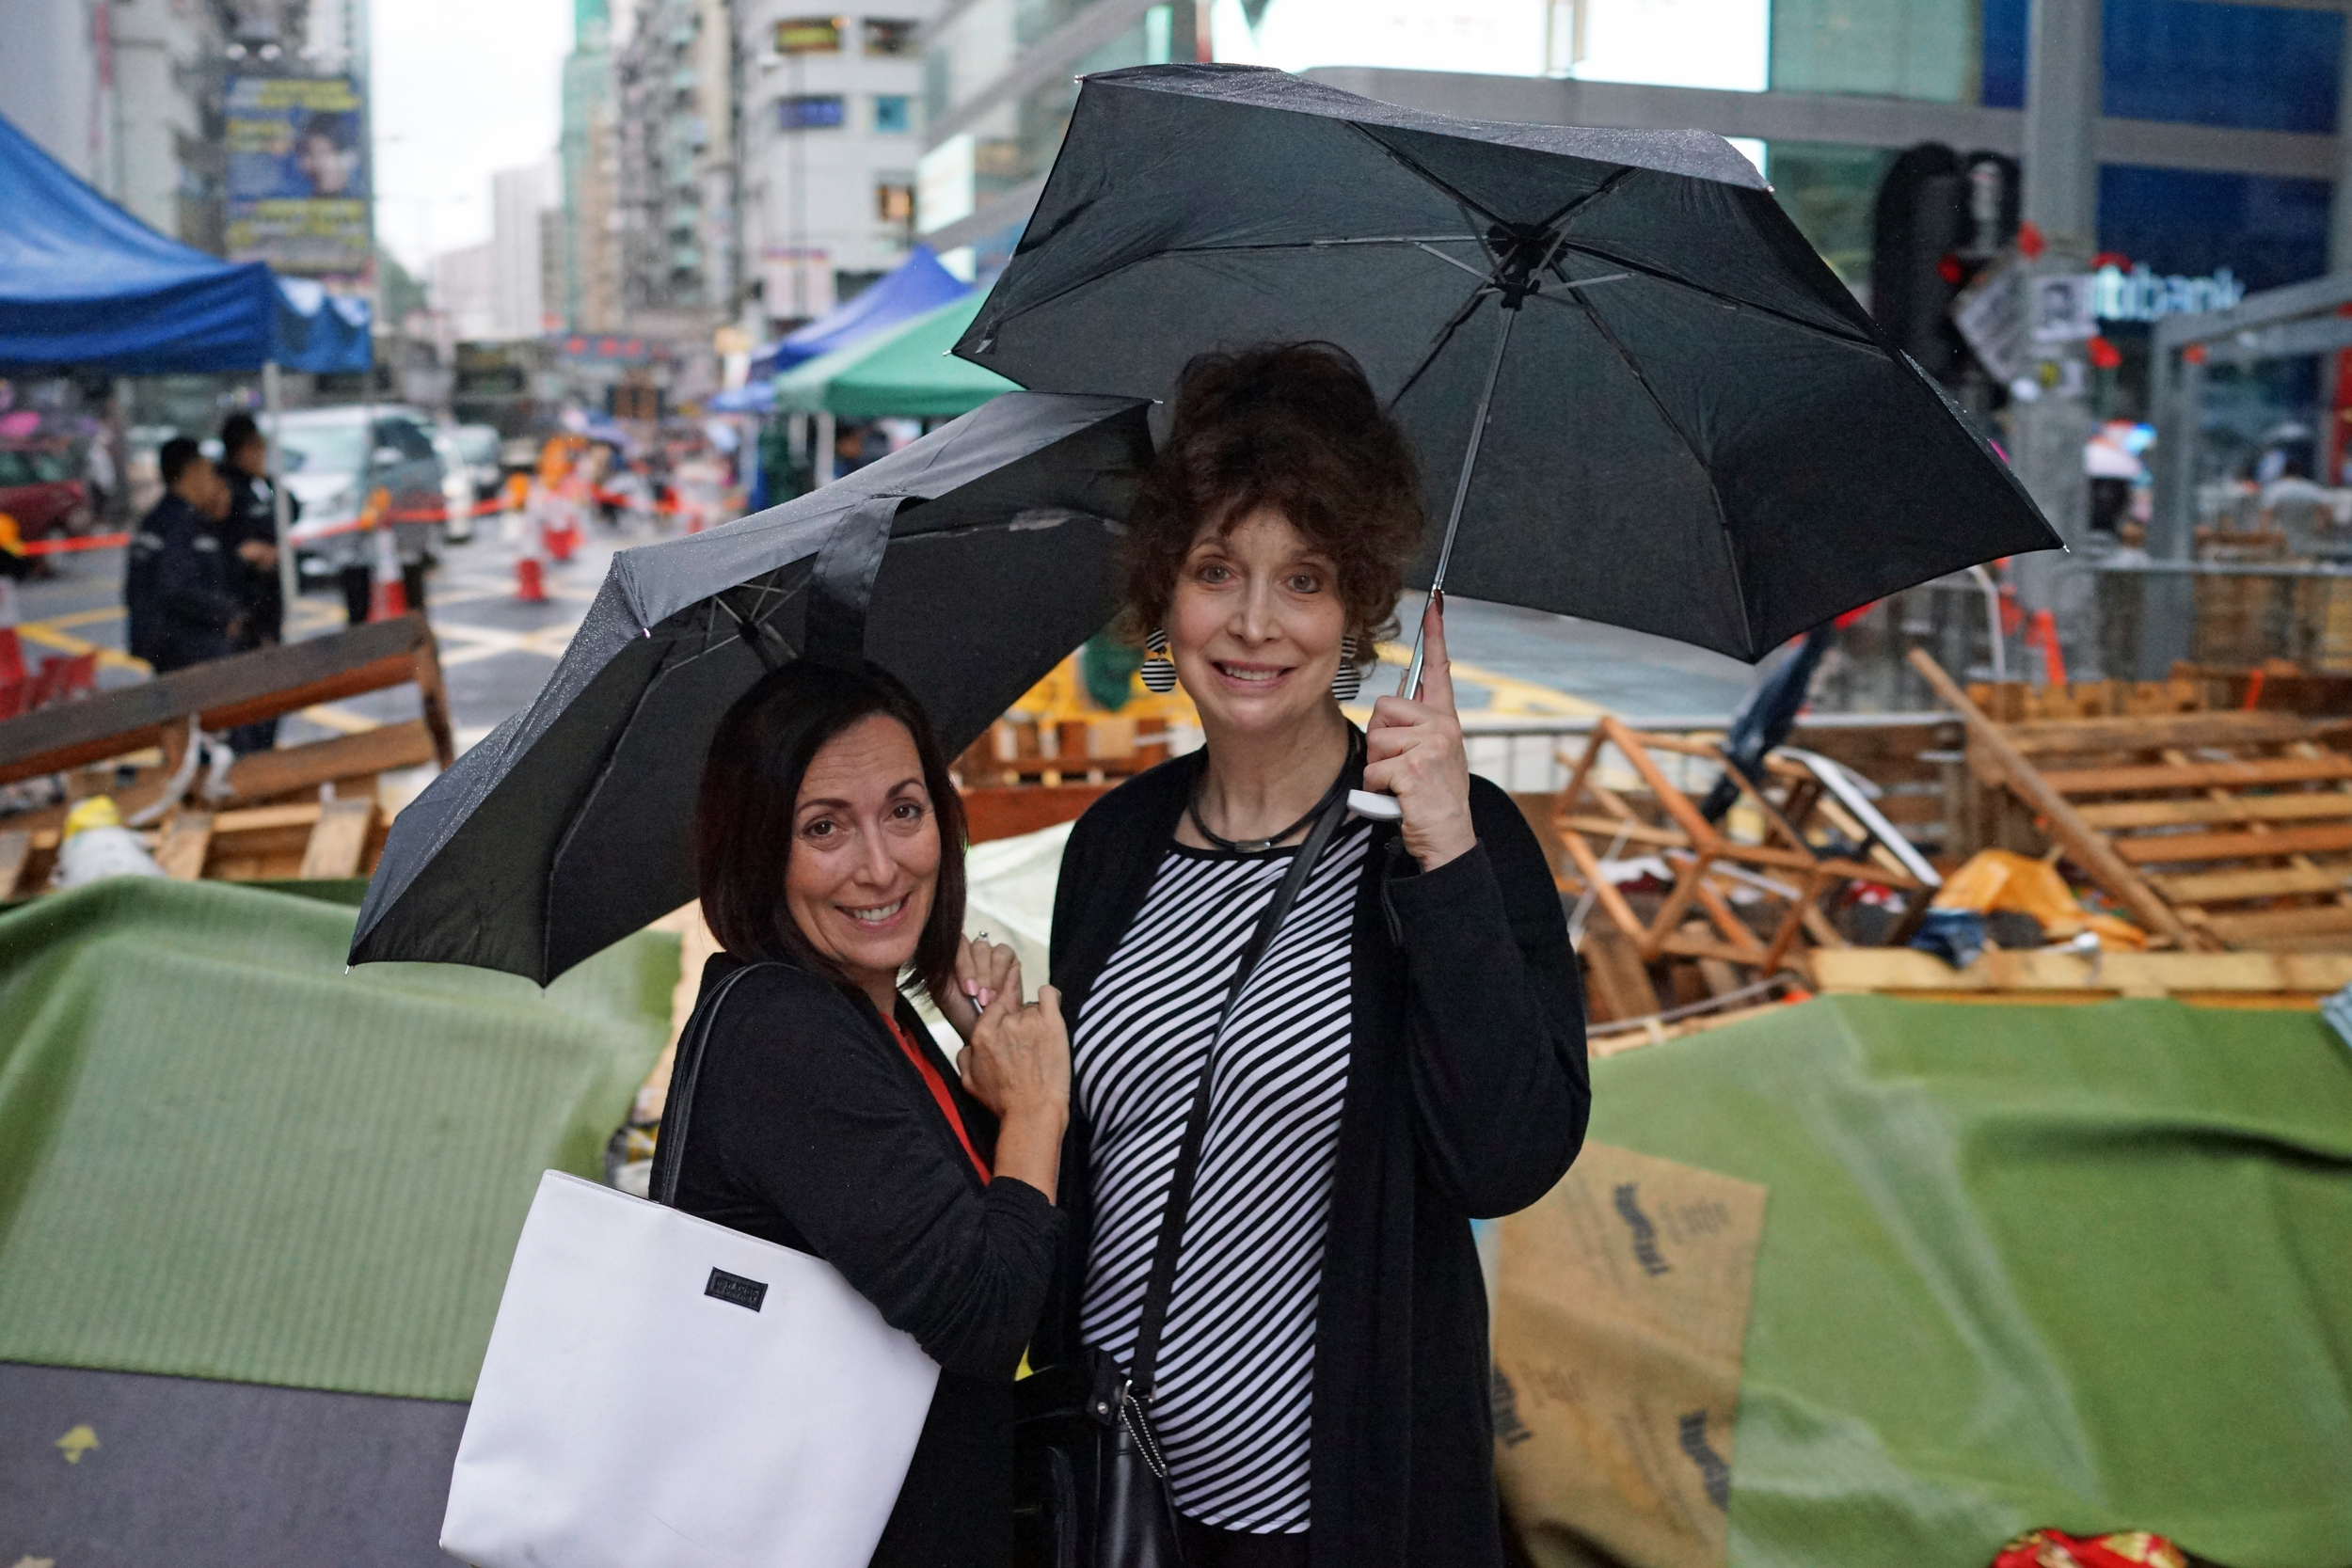 Alisa and Cathy are cousins - here they are at the protest site in Mong Kok, Kowloon